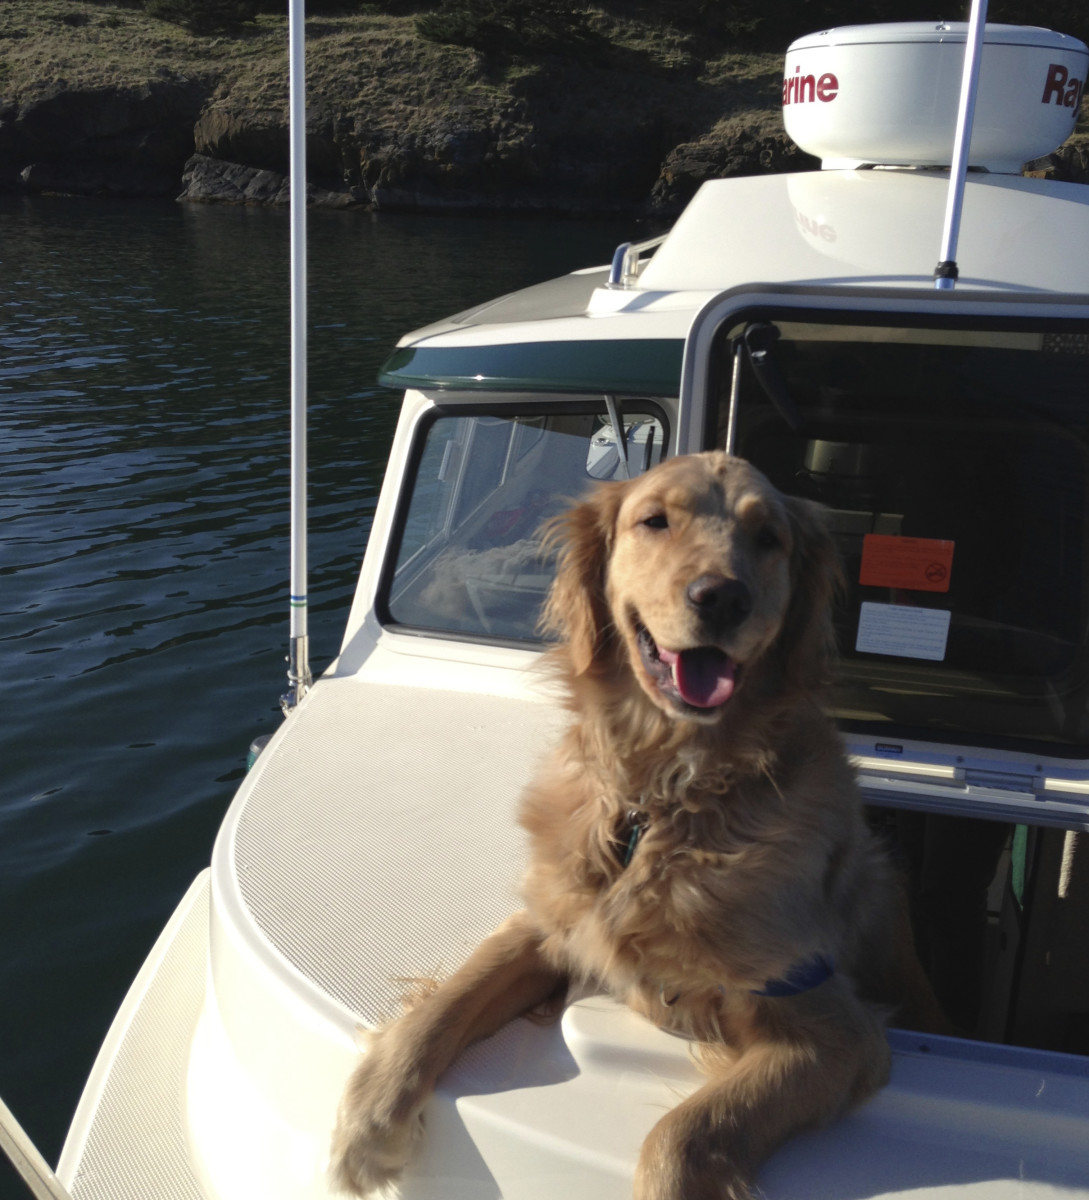 Here's Maggie in the San Juans aboard C-Dory 22 Retriever, says Sam Landsman.